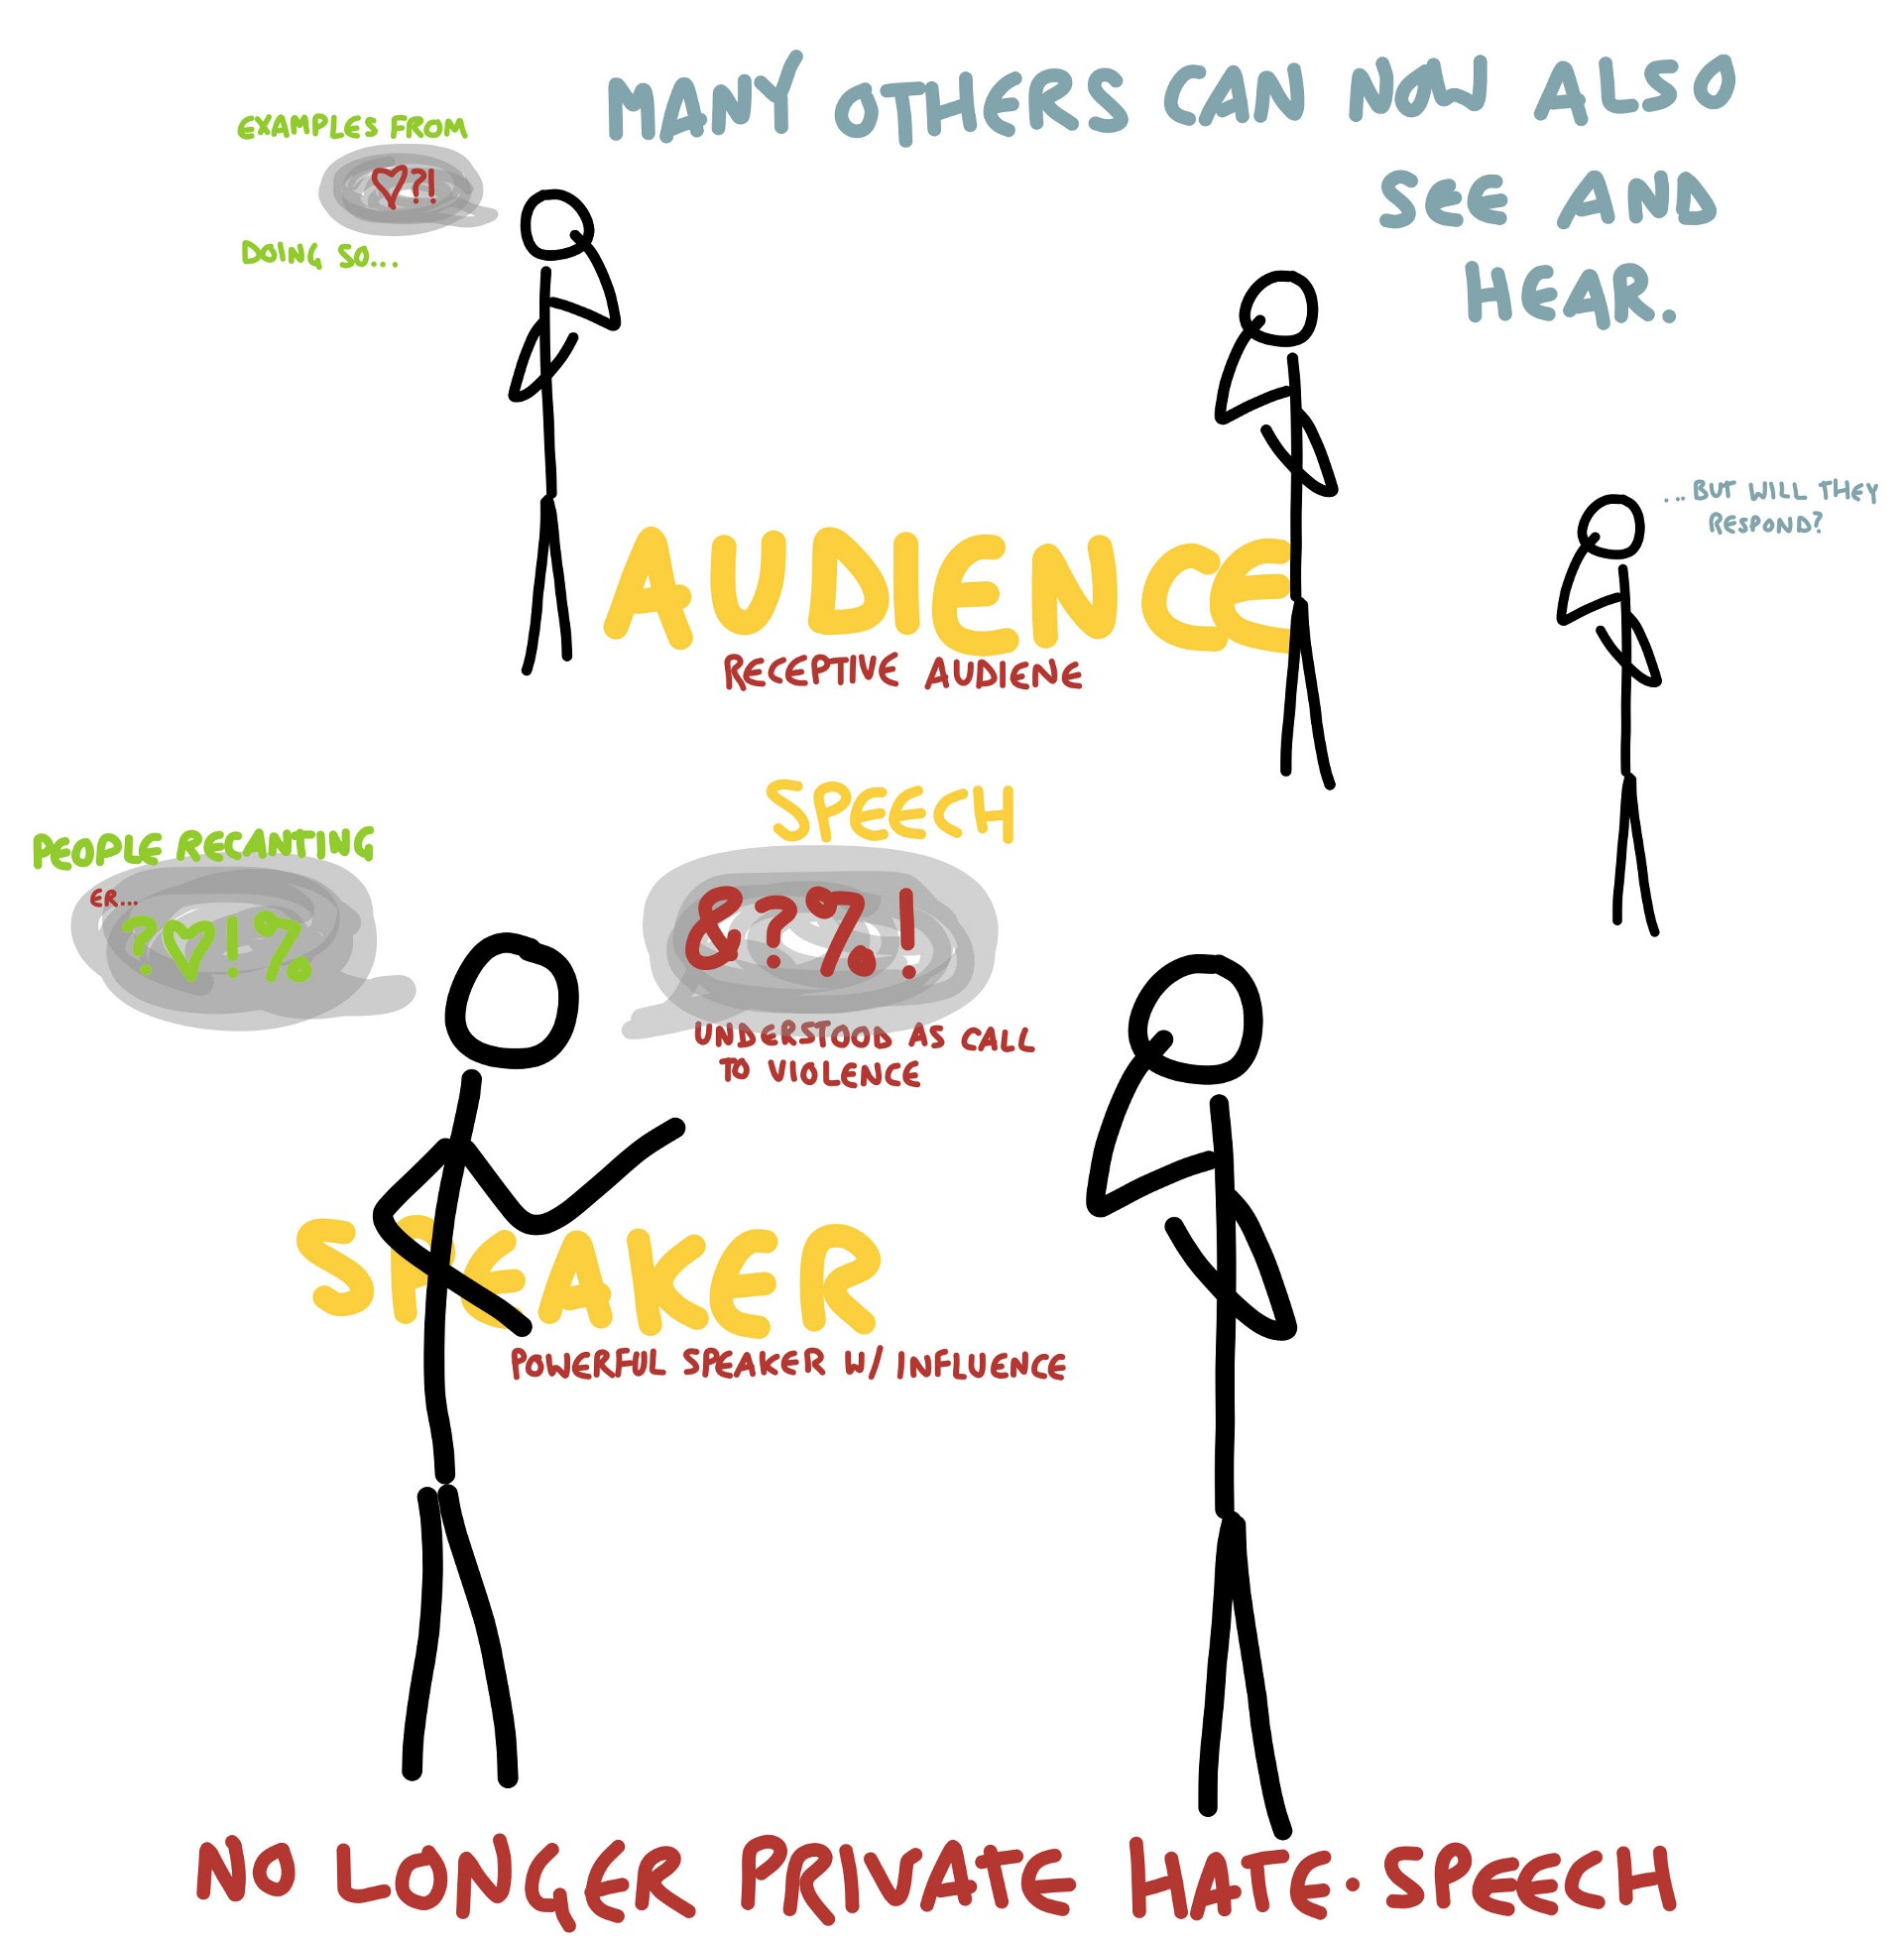 flower speech new responses to hatred online internet monitor flower speech new responses to hatred online internet monitor 2014 public discourse medium